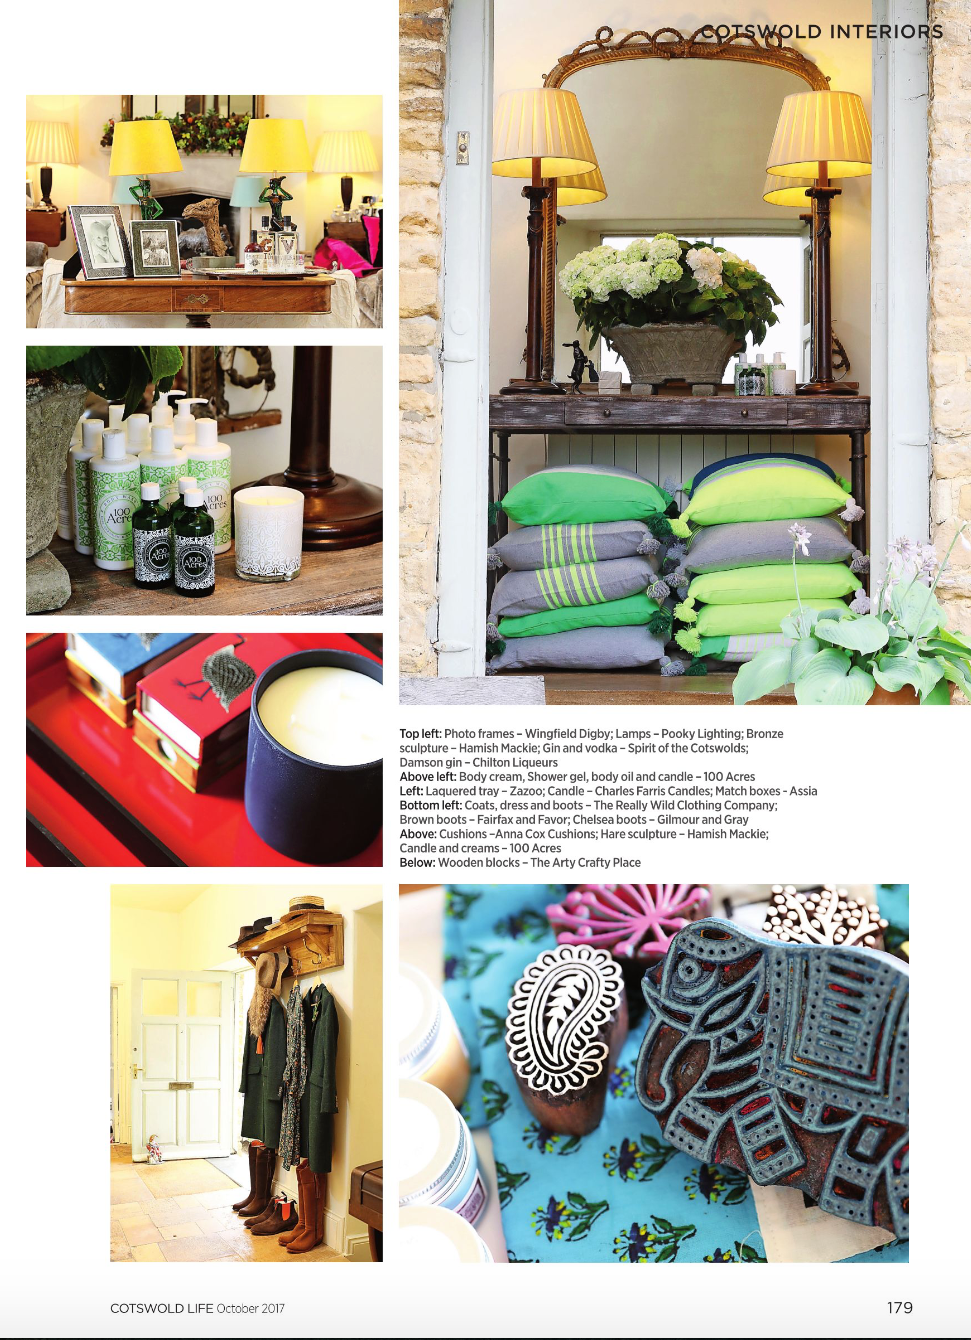 AnnaCoxCushions_Press_CotswoldsLife_4.png